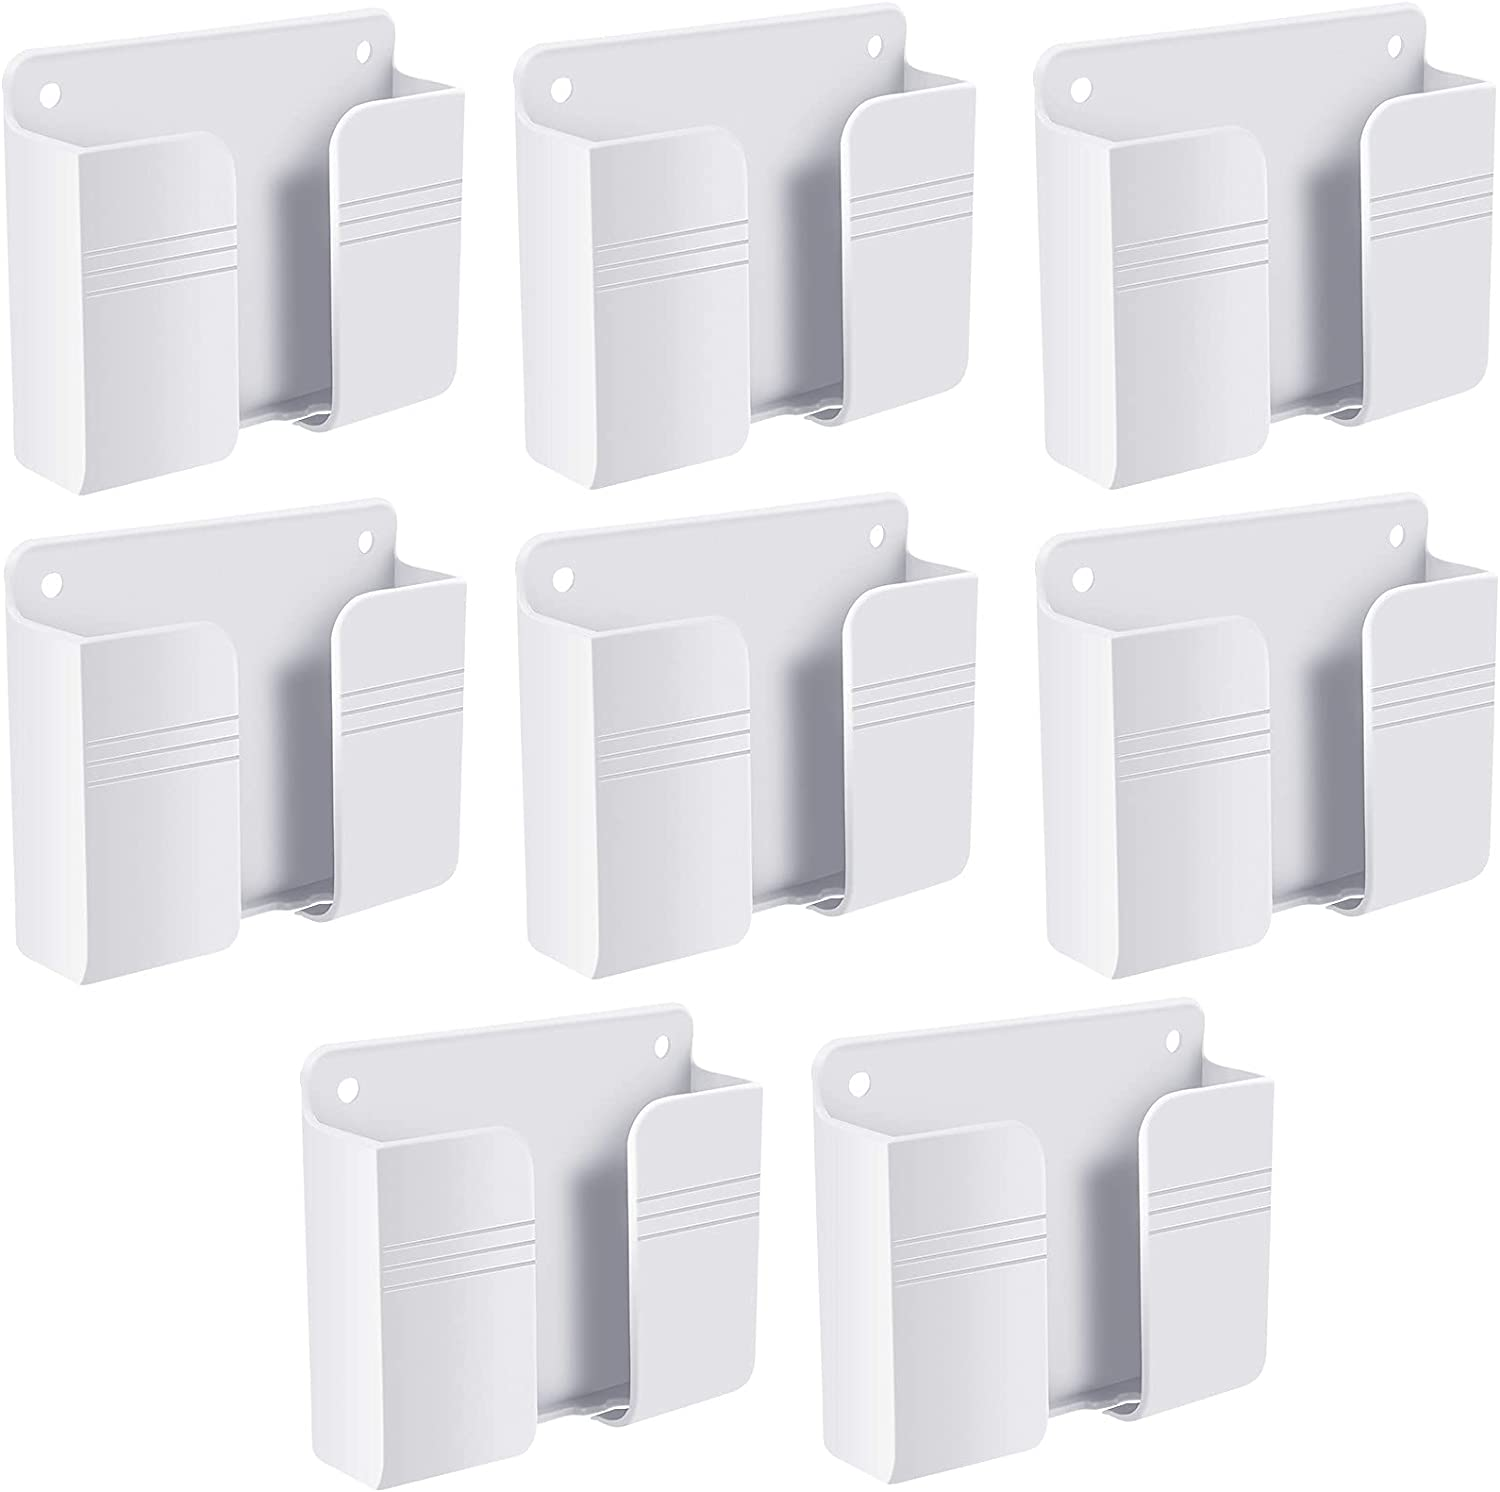 8 Pieces Wall Mail order Mount Phone Control Holder Cheap mail order shopping Storage Remote Adhesive